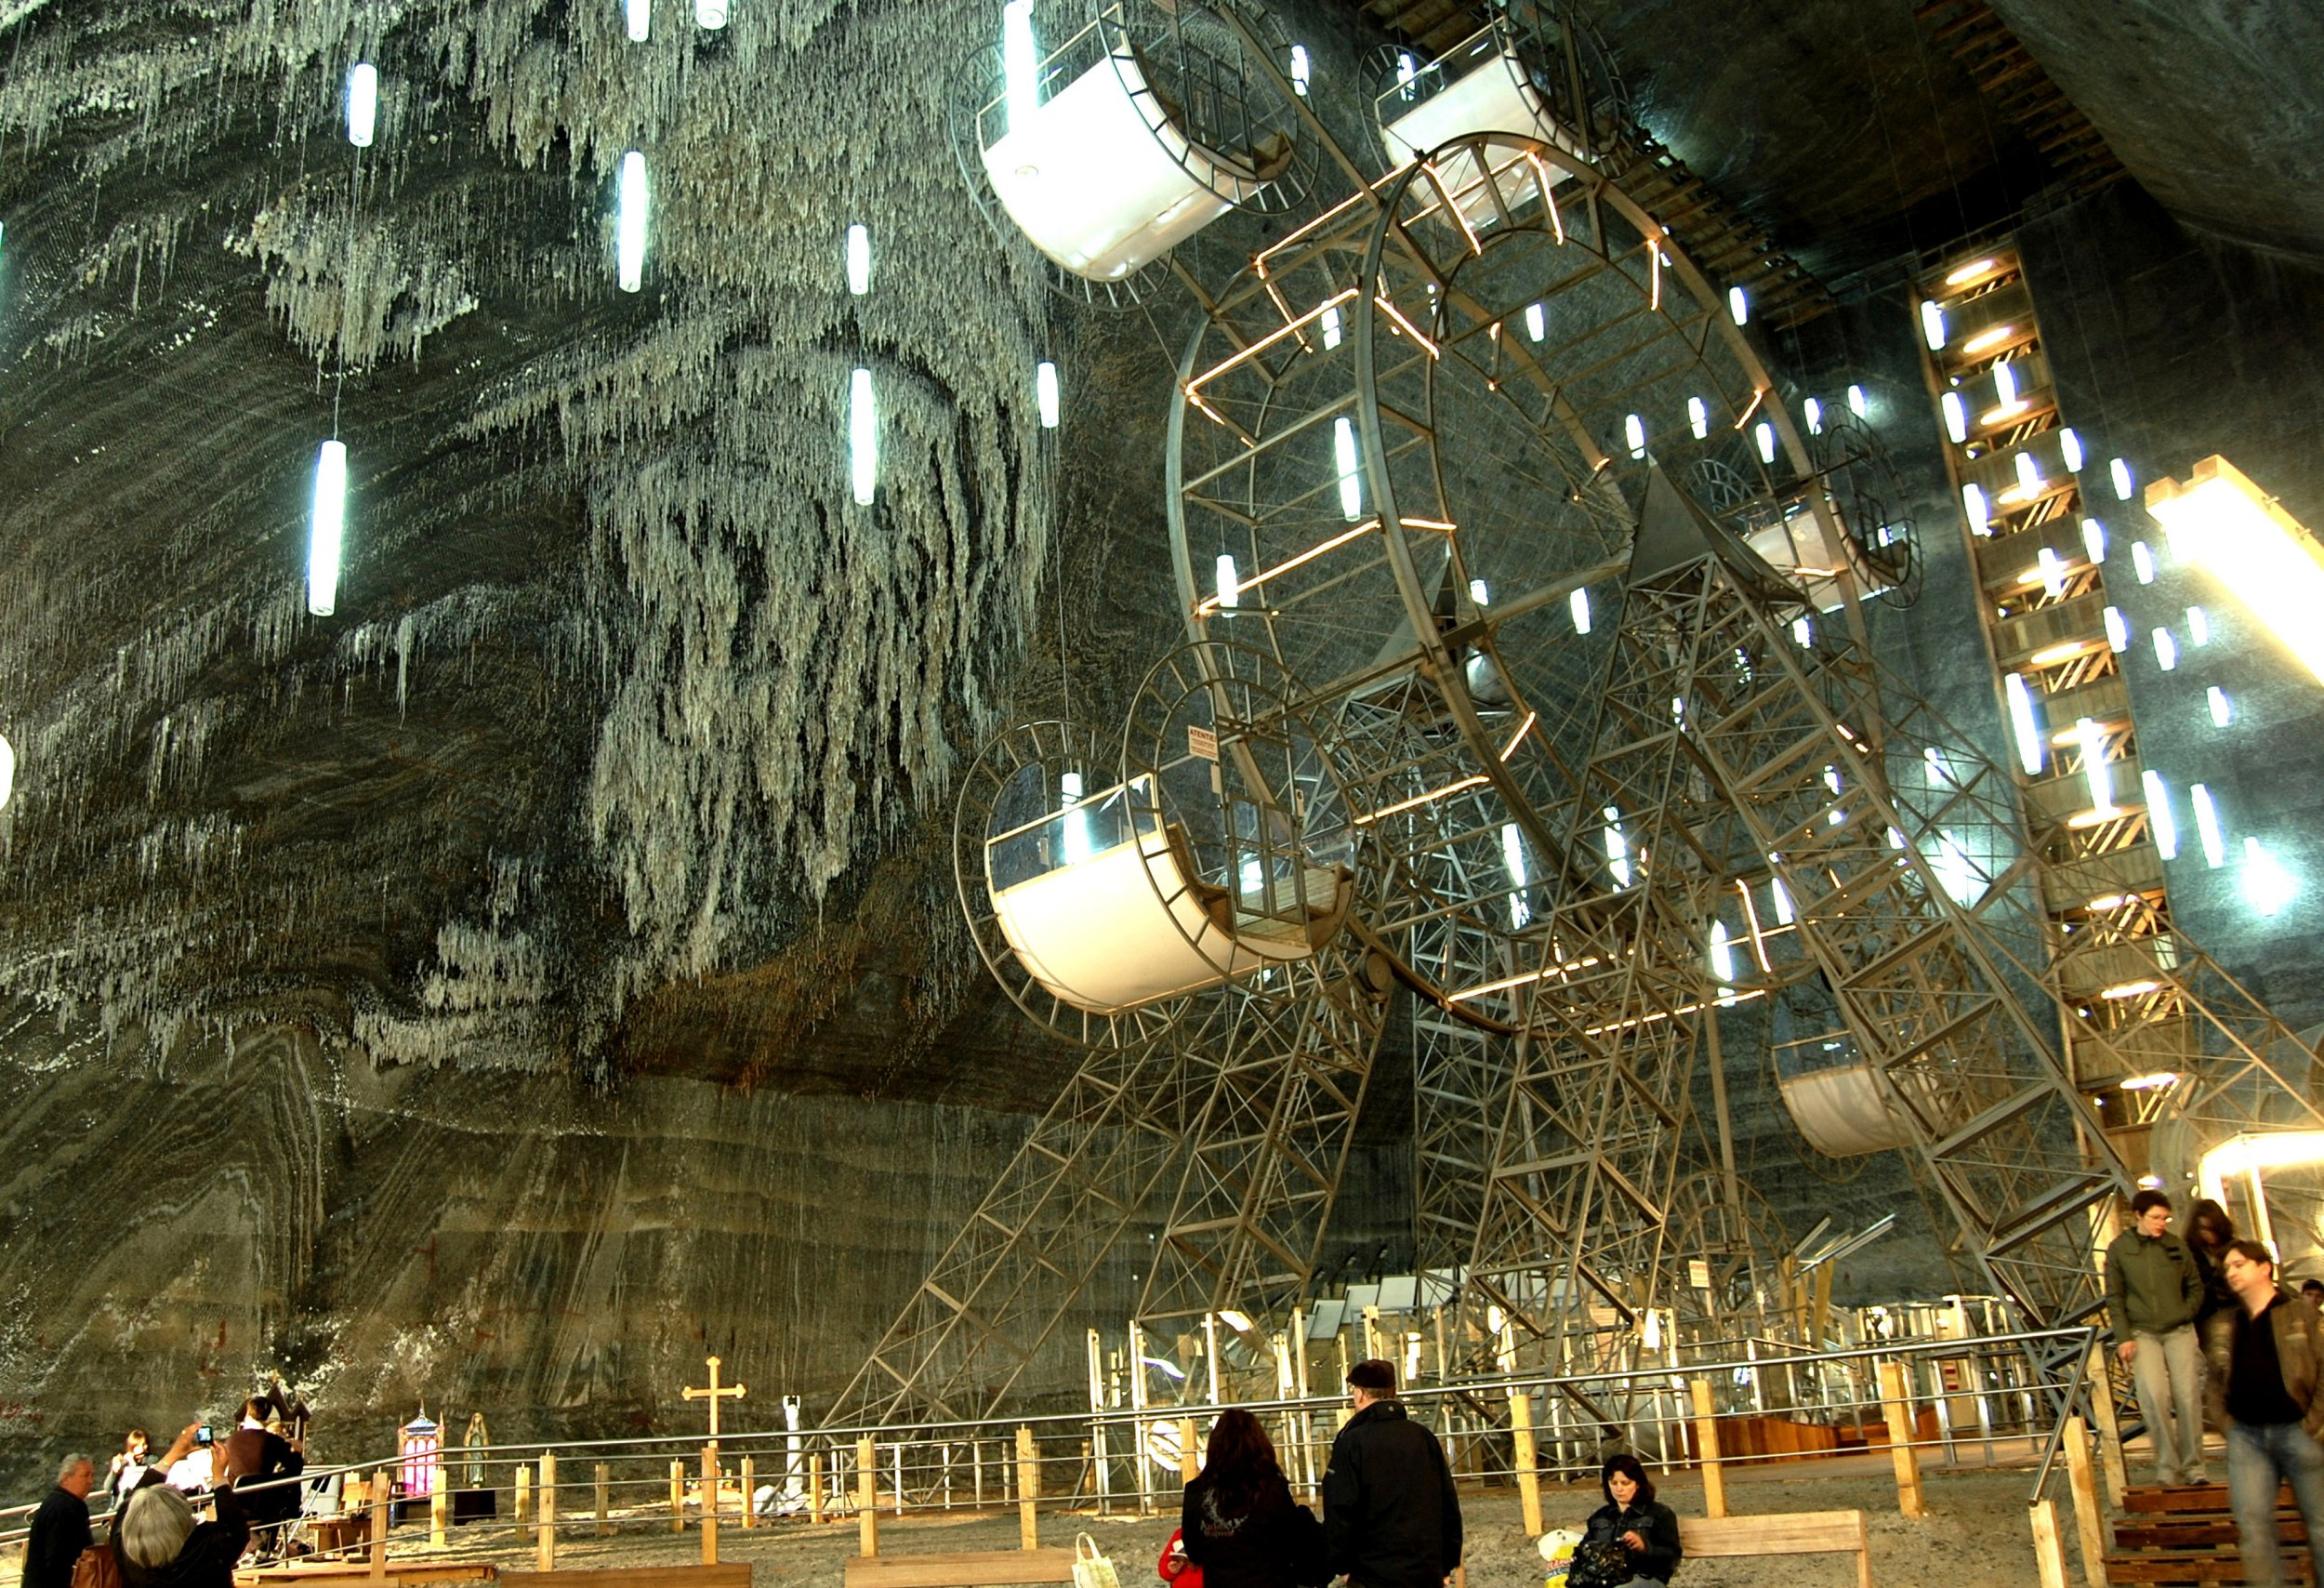 PIC FROM SALINA TURDA / CATERS NEWS - (Pictured: Ferris wheel, at Salina Turda salt mine) - These eye-opening images offer an insight into a gigantic theme park built inside one of the oldest SALT MINES in the world. Salina Turda, in Turda, Romania, regularly features on lists of hidden wonders and, at around 400ft deep, attracts around 600,000 visitors a year. Included in the deep pits list of attractions are a Ferris wheel, boating lake, bowling alley and amphitheatre. Inside the underground world - accessible through a labyrinth of elevators and stairs - the mines walls are also awe-inspiring. - SEE CATERS COPY